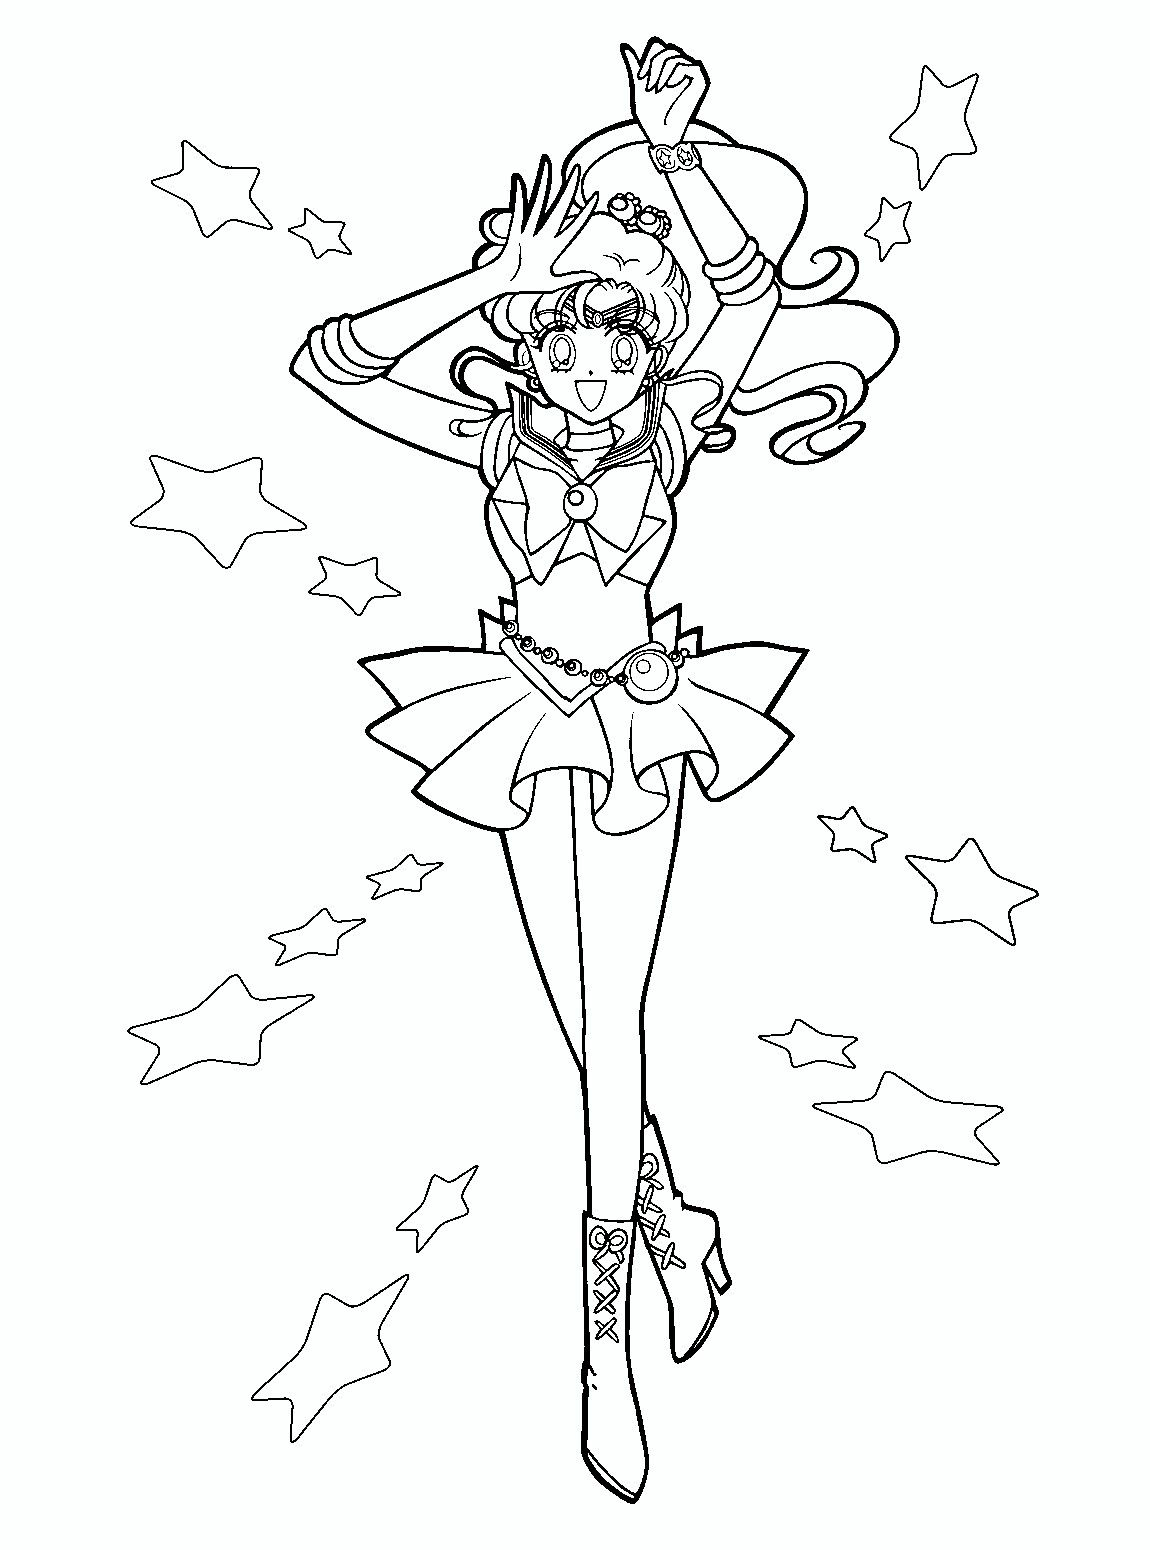 Pin By Hal Hensley On Anime Asian Art Amp Manga Coloring Pages